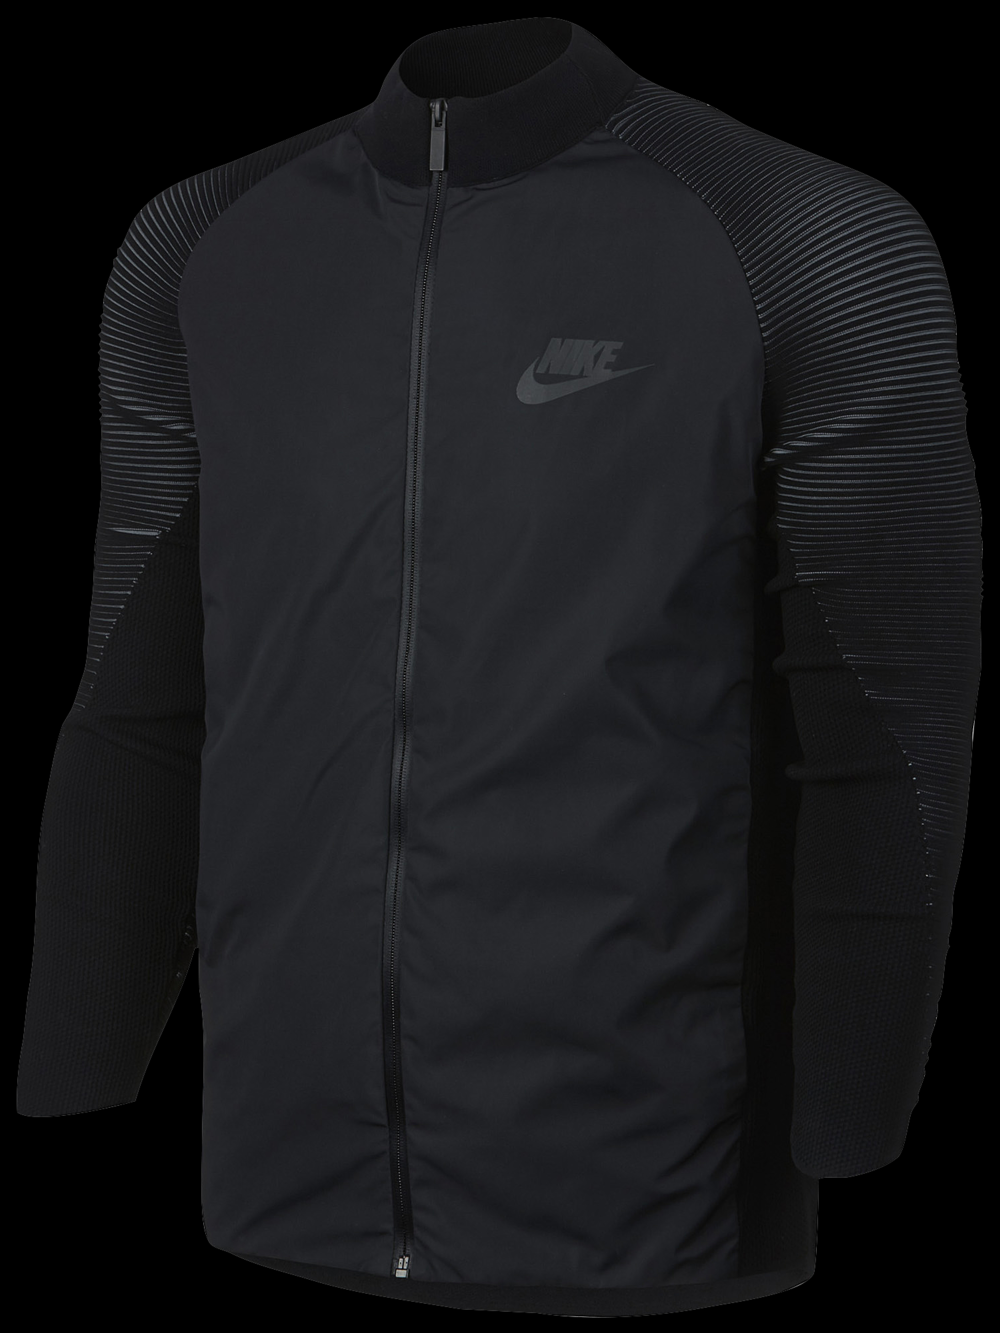 Nike Dynamic Reveal Jacket at Foot Locker, $249.99